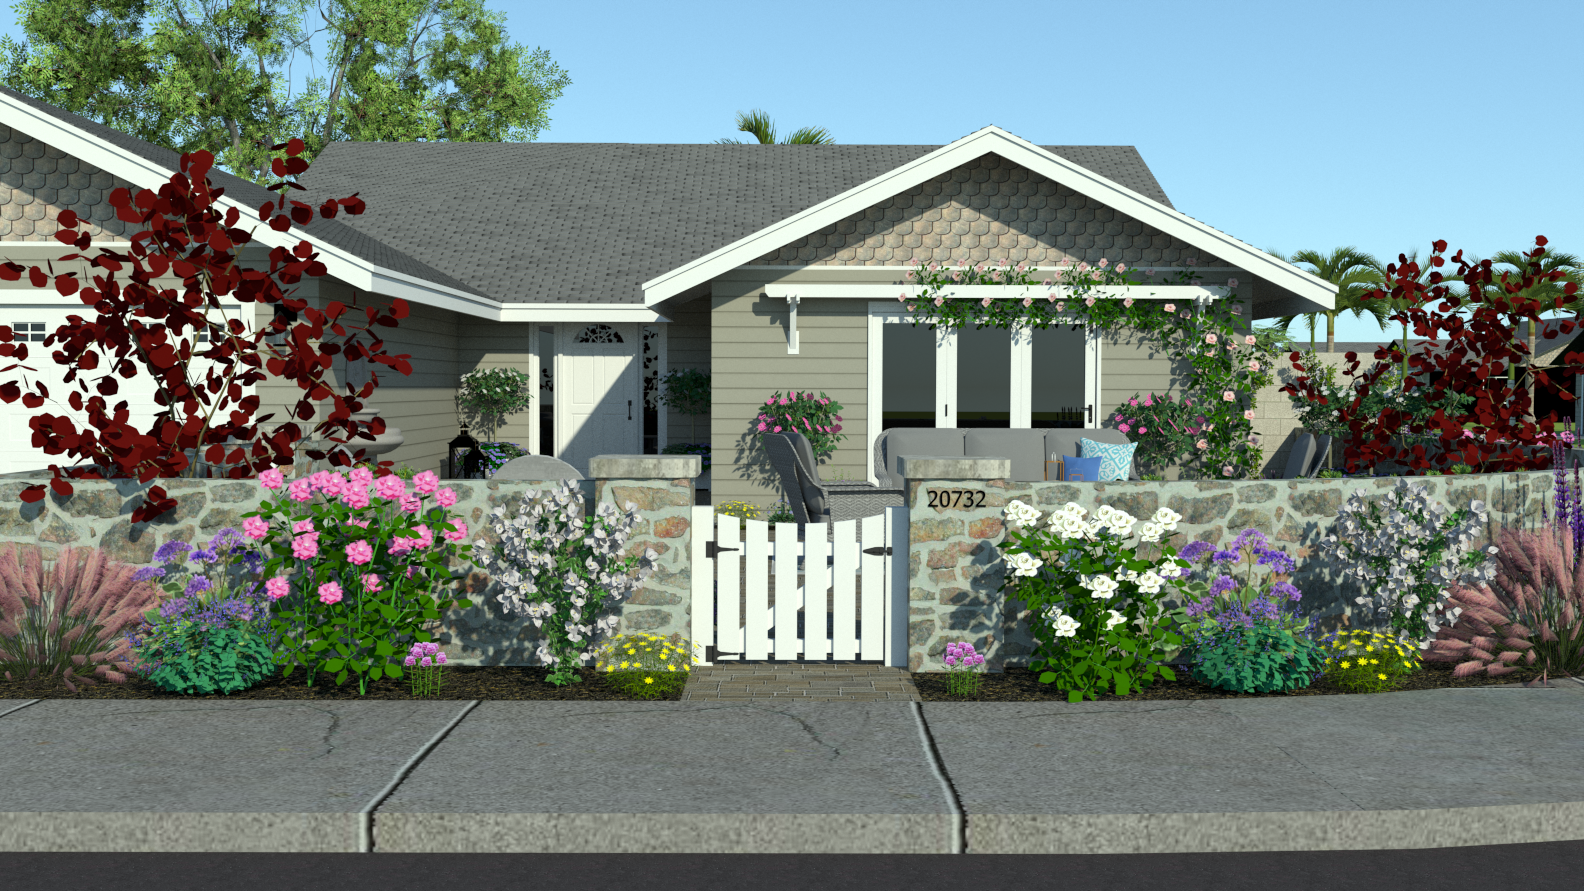 AutoSave_ANNA AND GREG FERREE_12-28-2016_SKETCHUP-2016-FRONT GARDEN_1-Scene 1.png